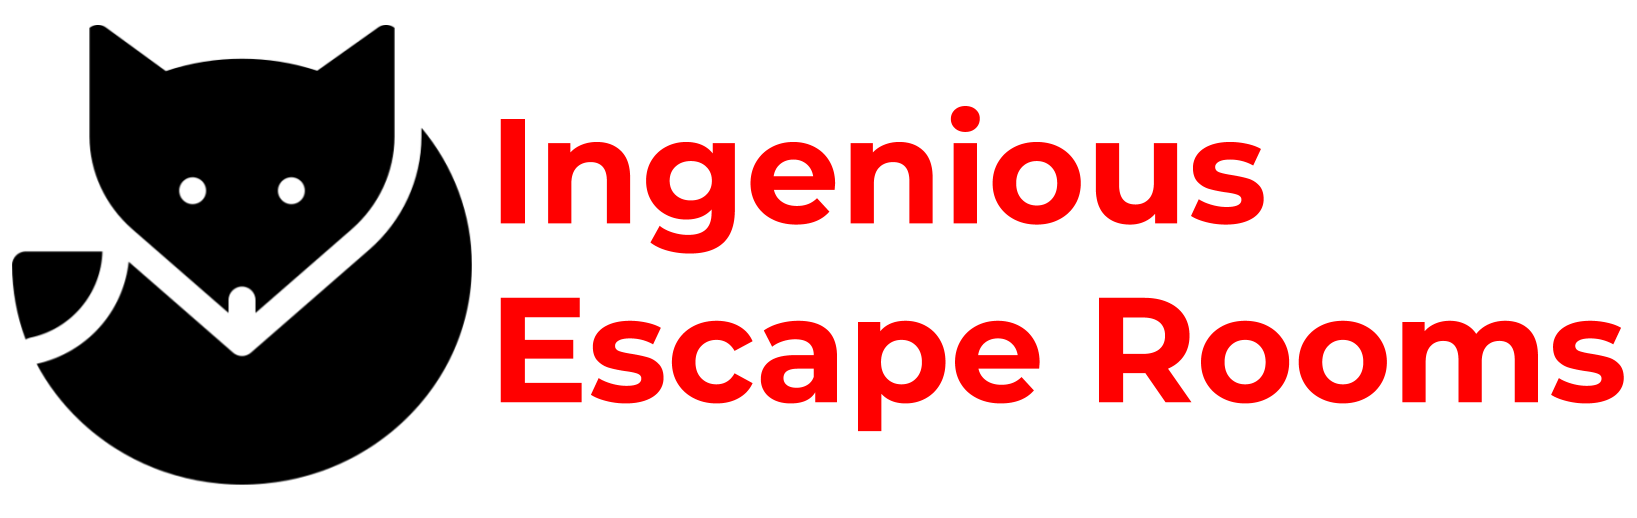 Ingenious Escape Rooms |   New (1)